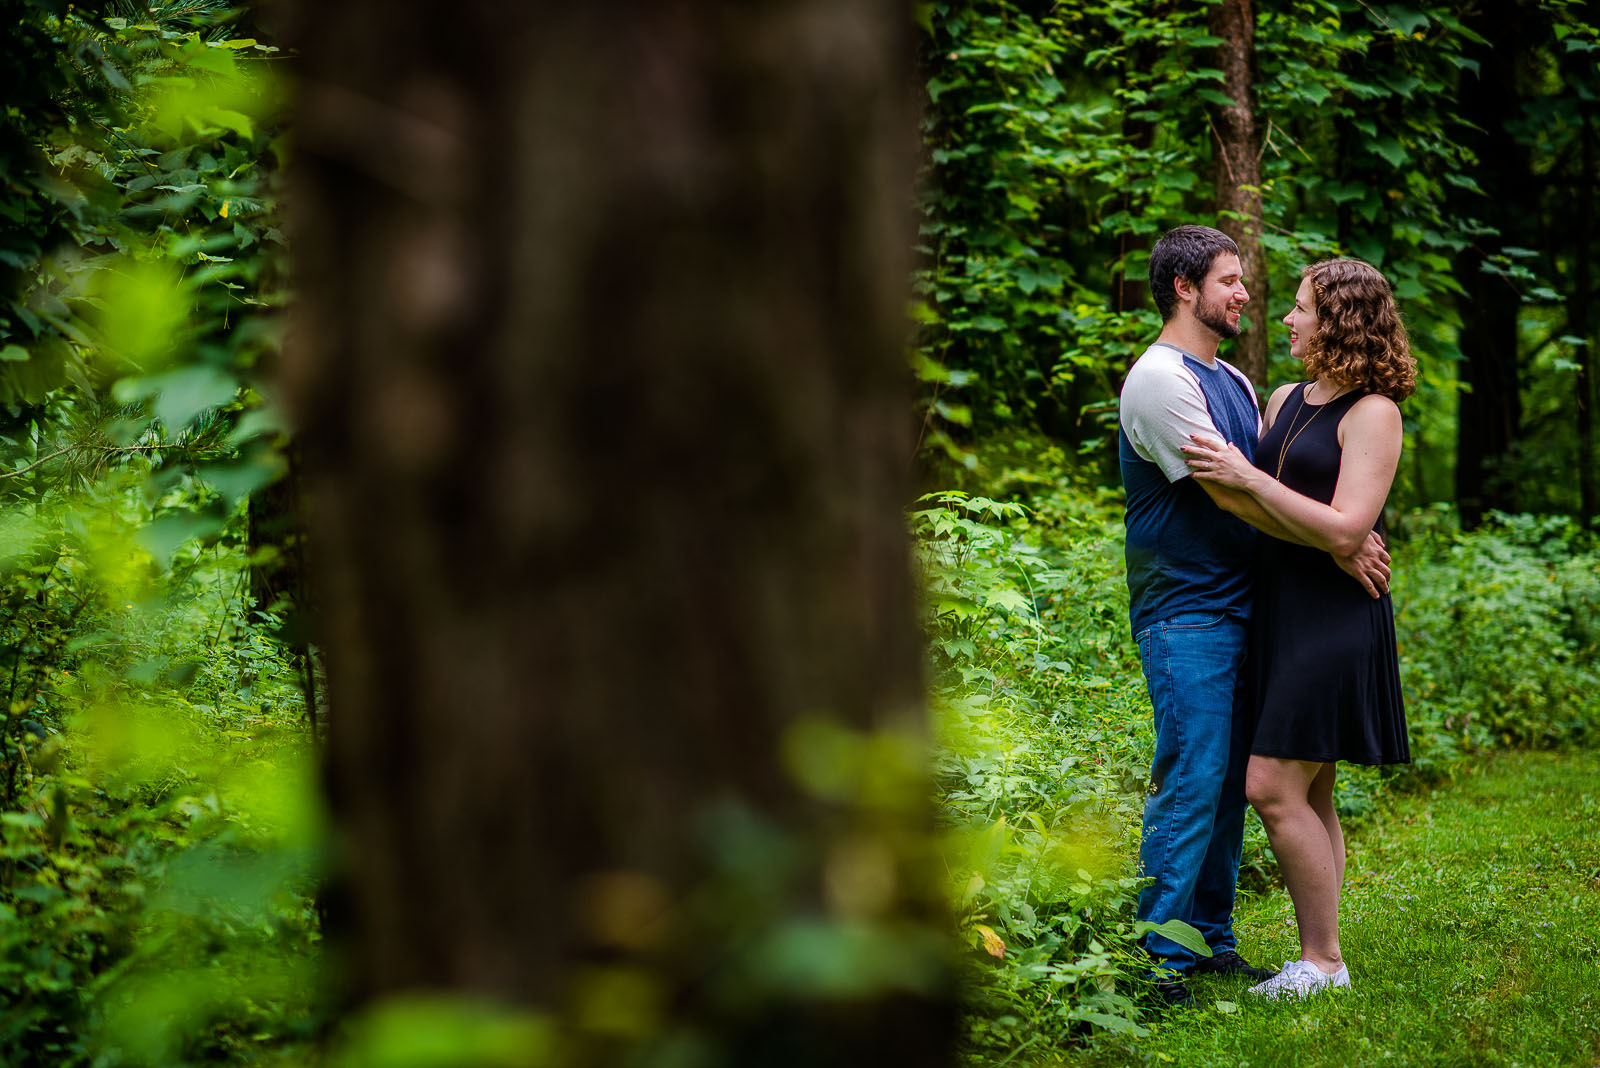 Eric_and_Christy_Photography_Blog_Engagement_Andrea_Clint-18